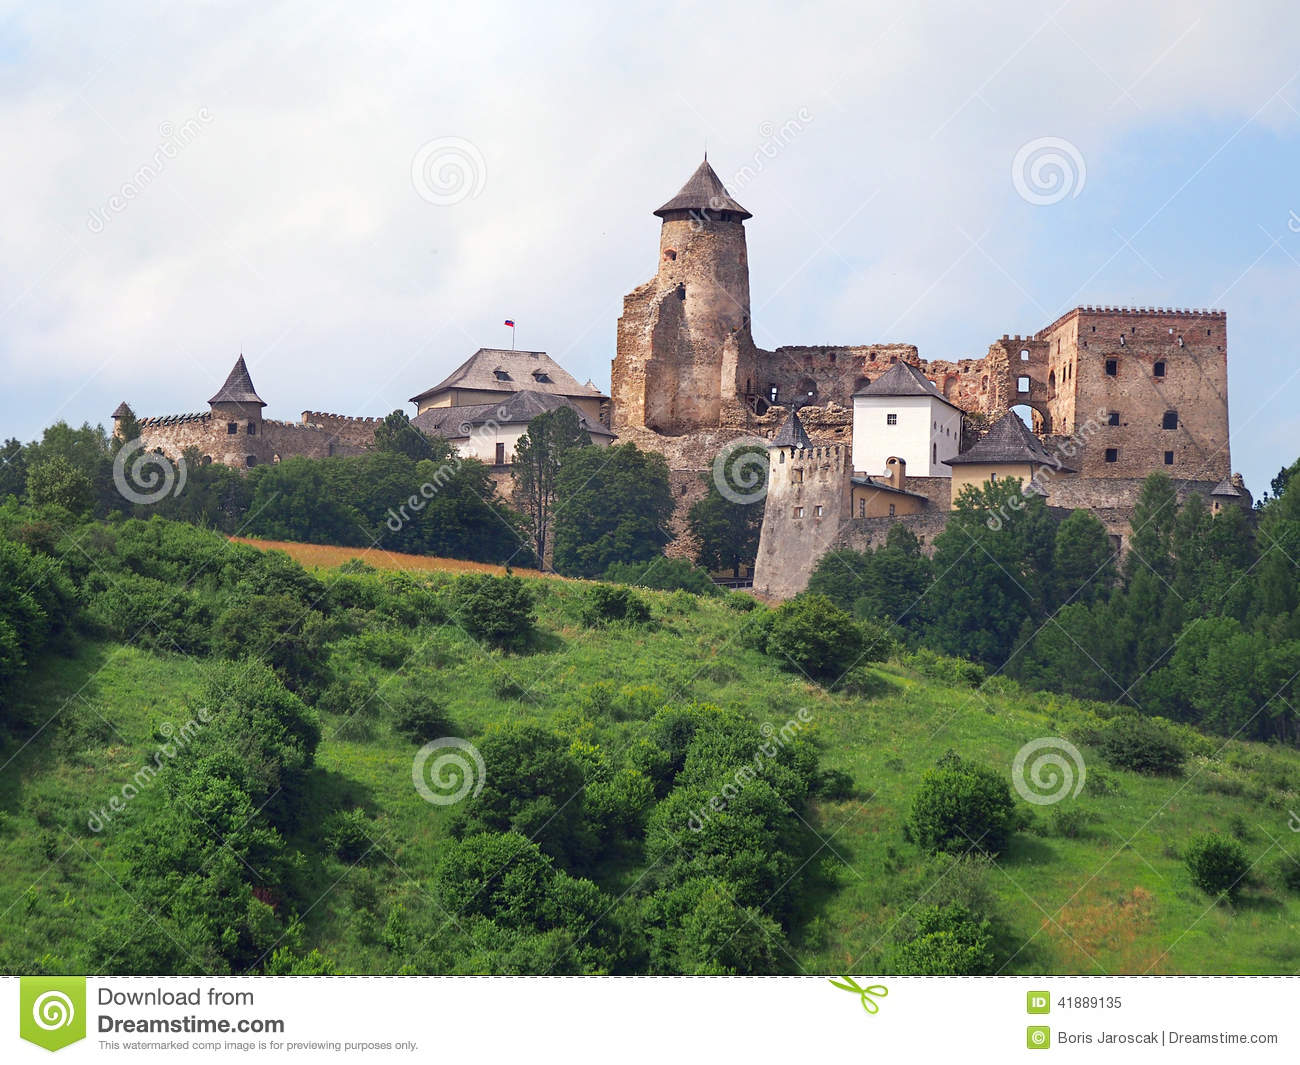 A hill with the castle of Lubovna, Slovakia